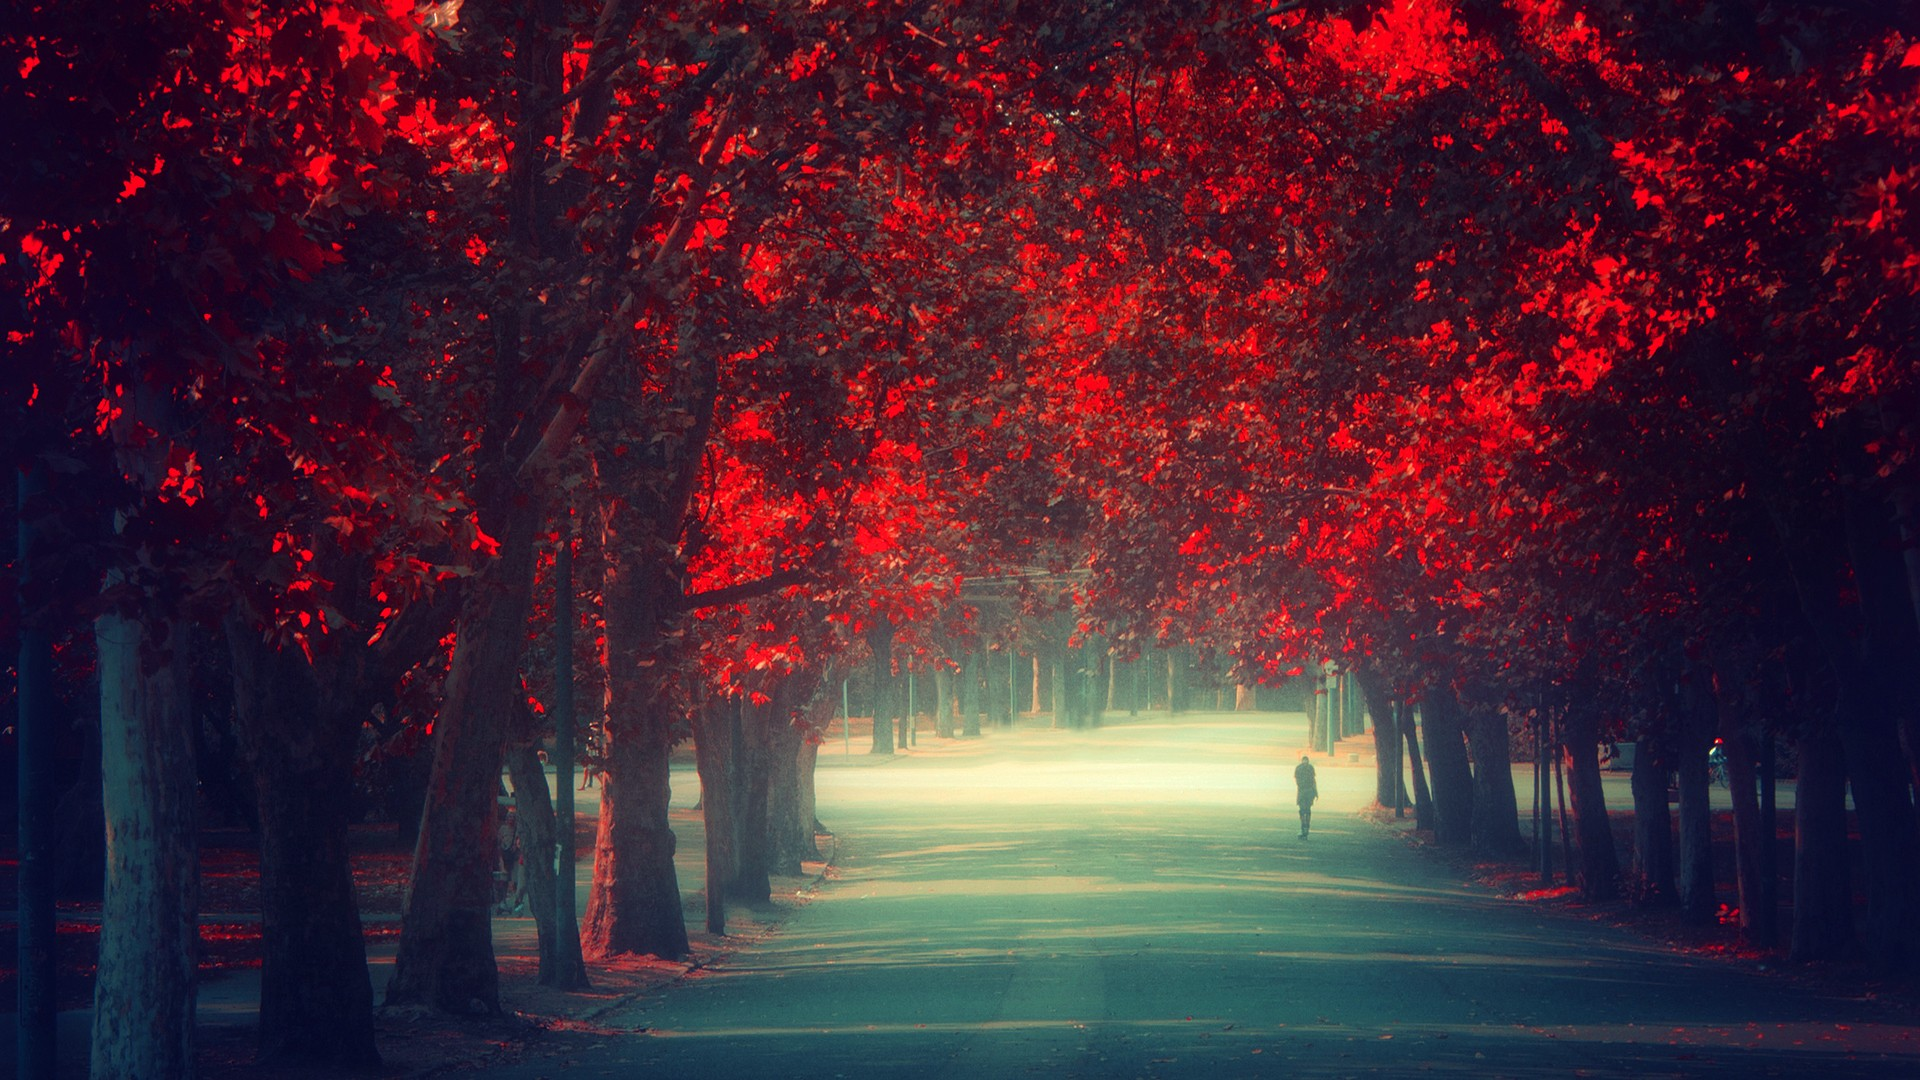 Trees Autumn Season Red Leaves Remembrance Wallpaper